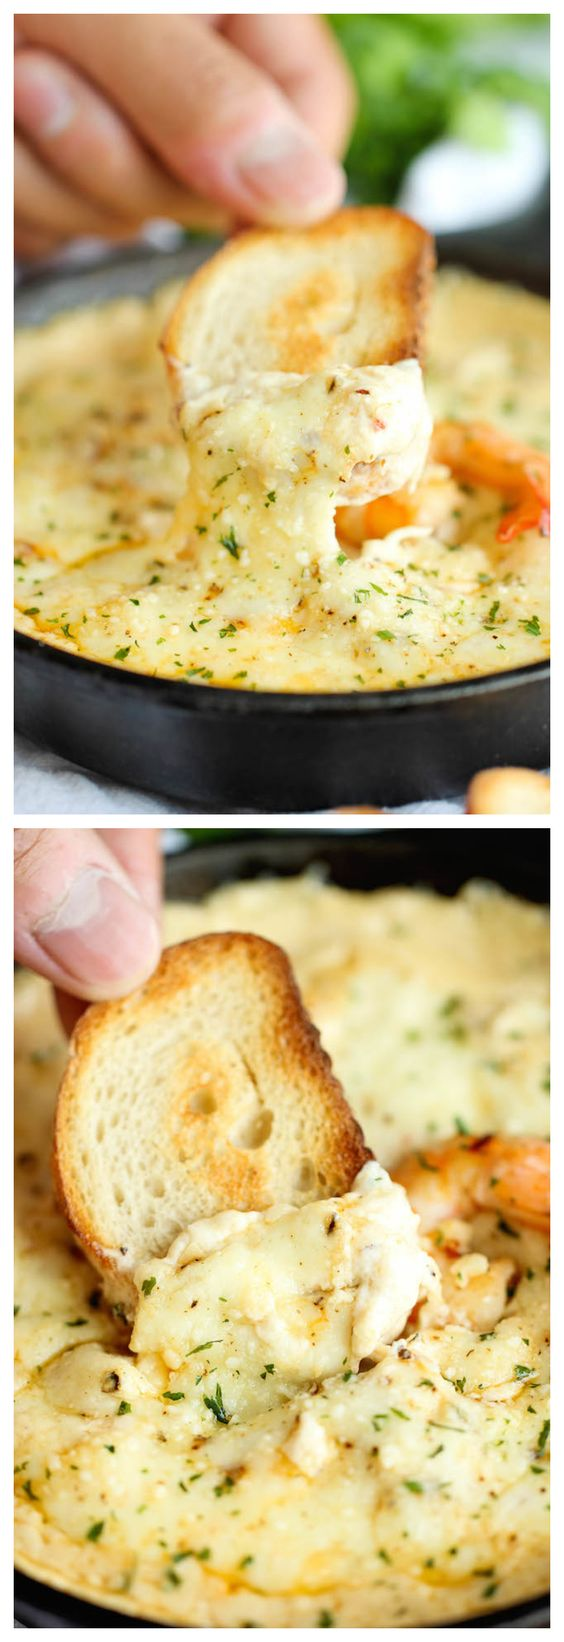 The Shrimp Scampi Dip mixture is spooned into a greased 2 qt baking dish or a large cast iron skillet. This does make quite a bit of dip — about 2 1/2 lbs worth — so it's plenty for a party. Top with panko breadcrumbs to finish it off.